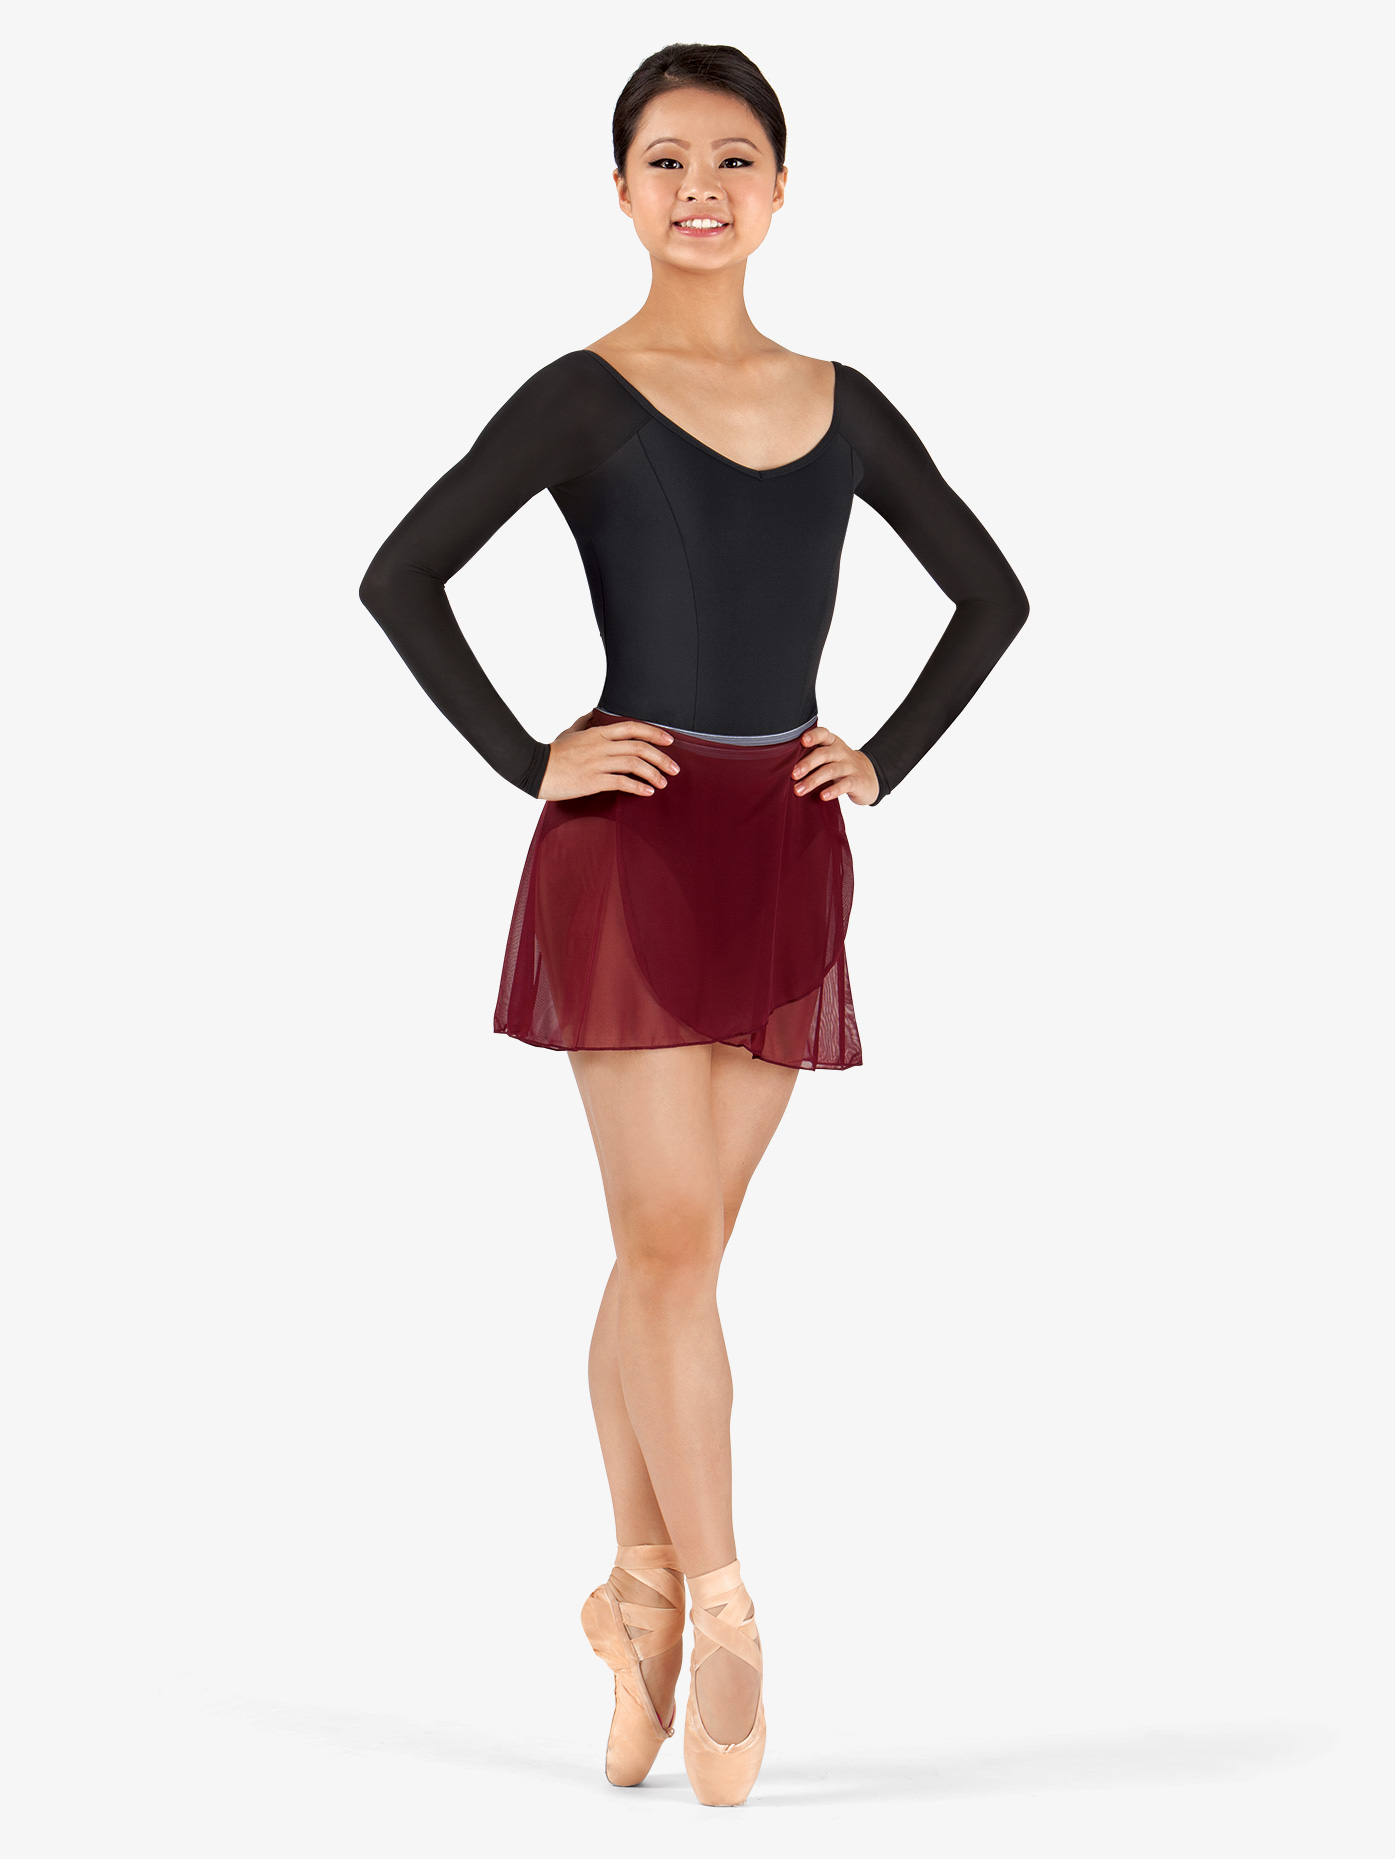 Body Wrappers Adult Two-Tone Wrap Dance Skirt BW9100